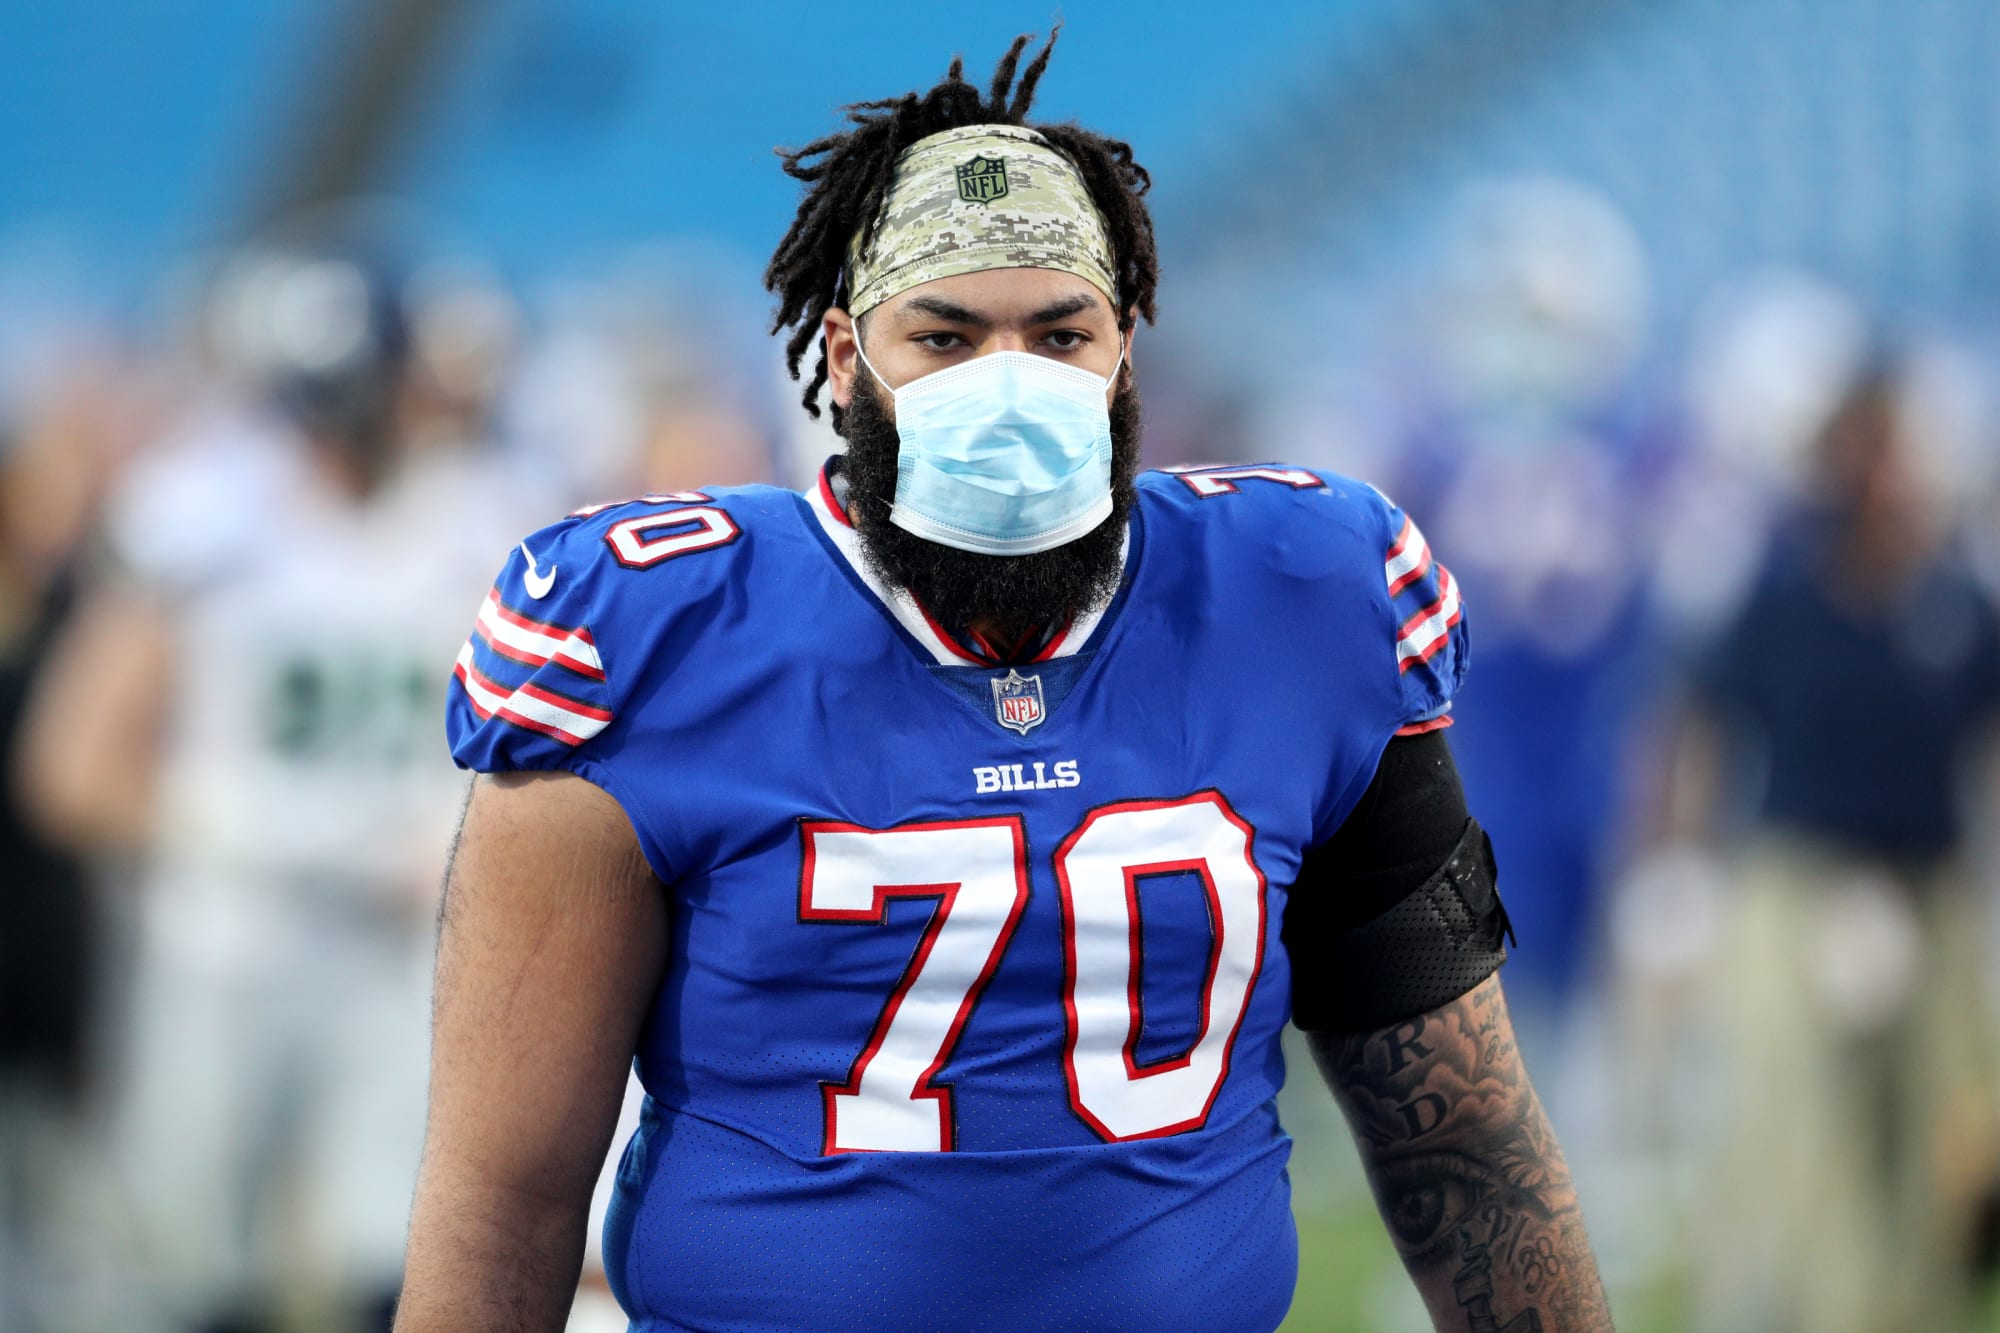 Bills right tackle Cody Ford out for season with meniscus injury